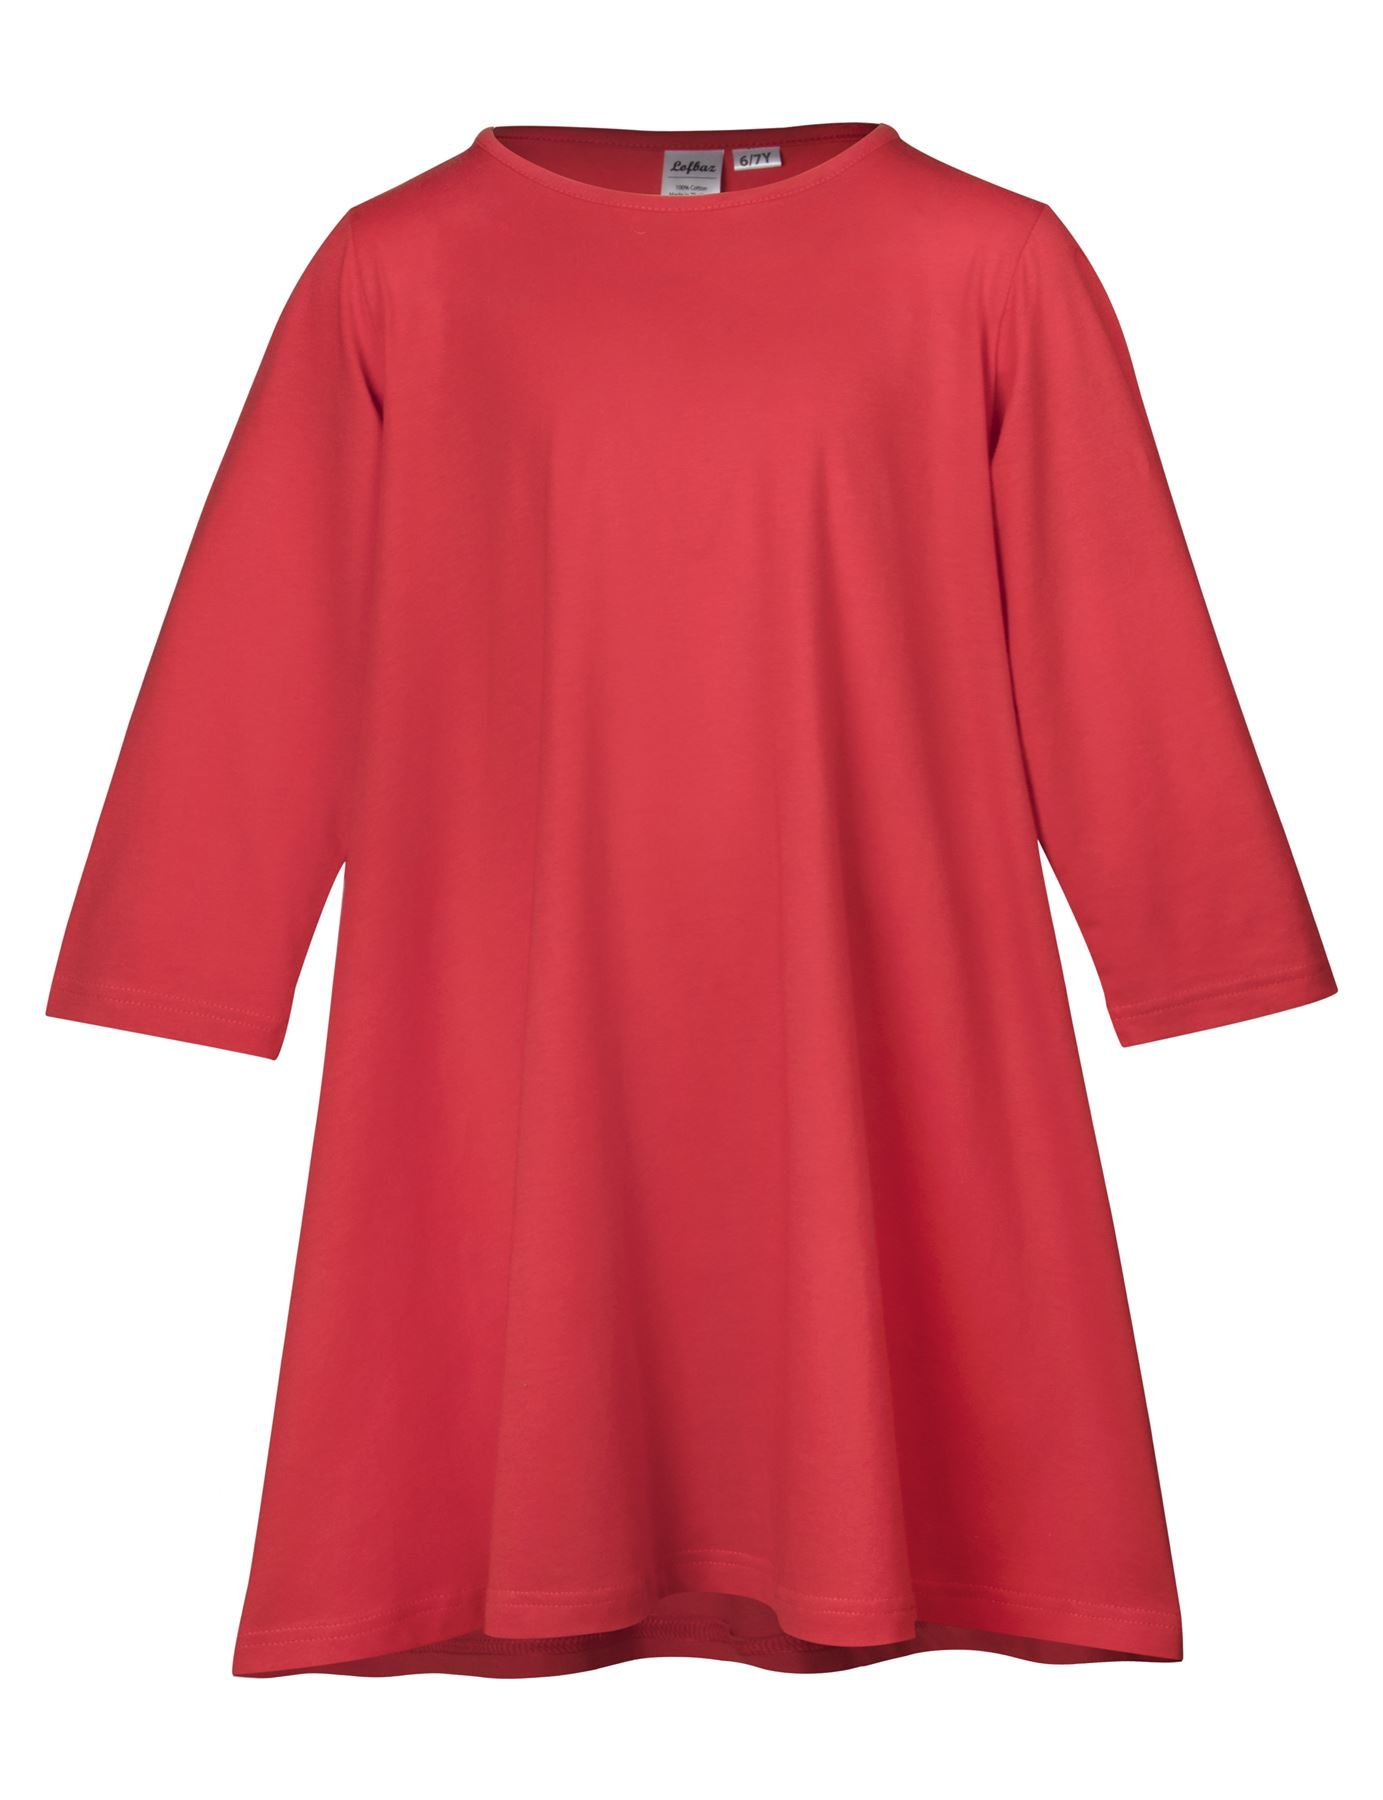 Lofbaz Girl's Comfy Cotton Long Sleeve Casual Dresses Solid Vibrant Red 5/6Y